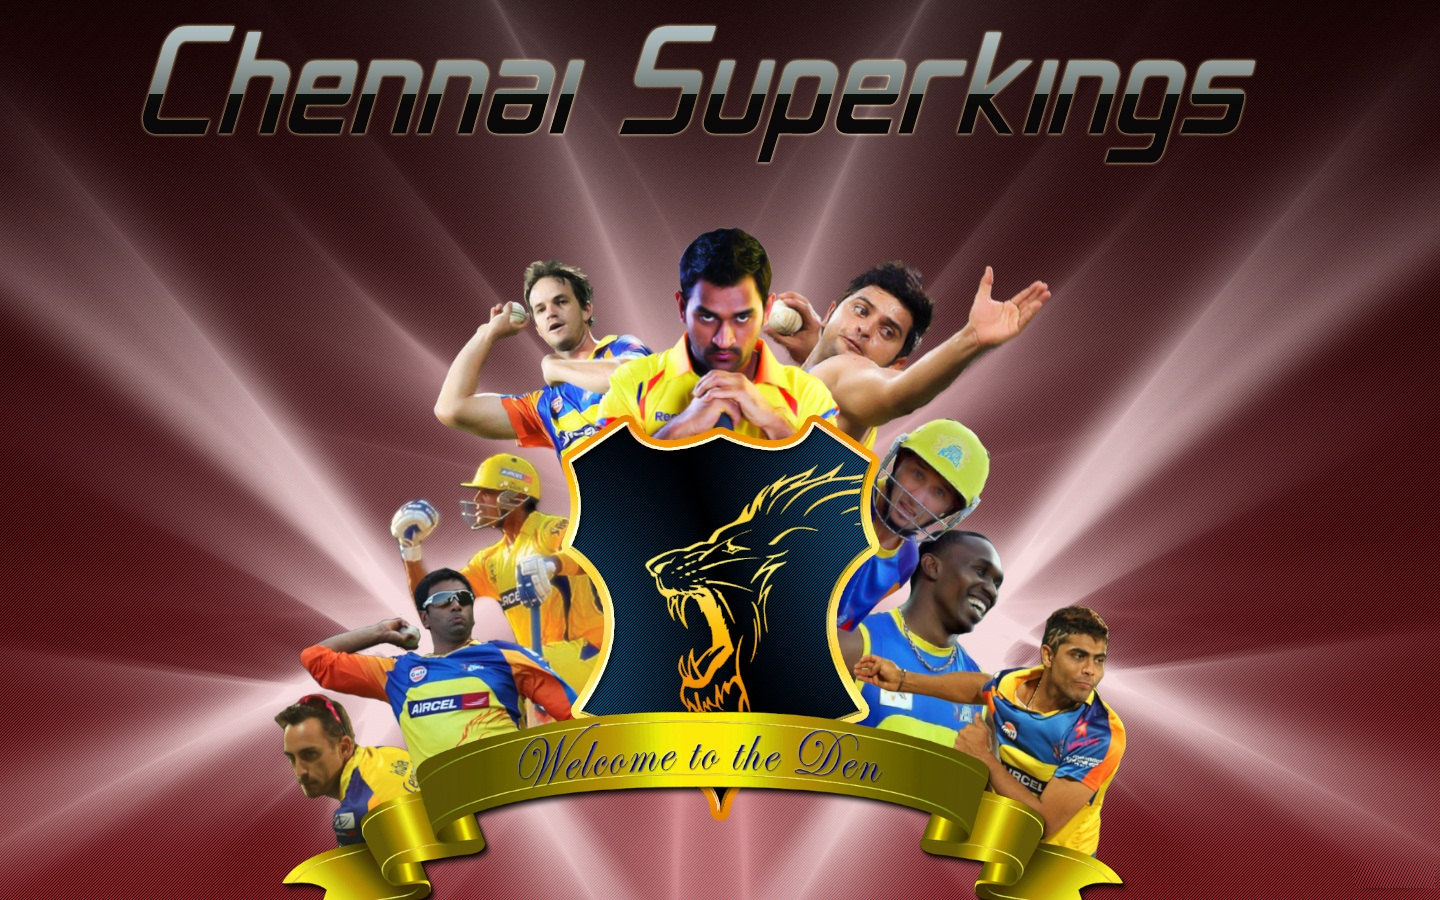 ipl csk chennai super kings welcome to the den dhoni hd wallpaper